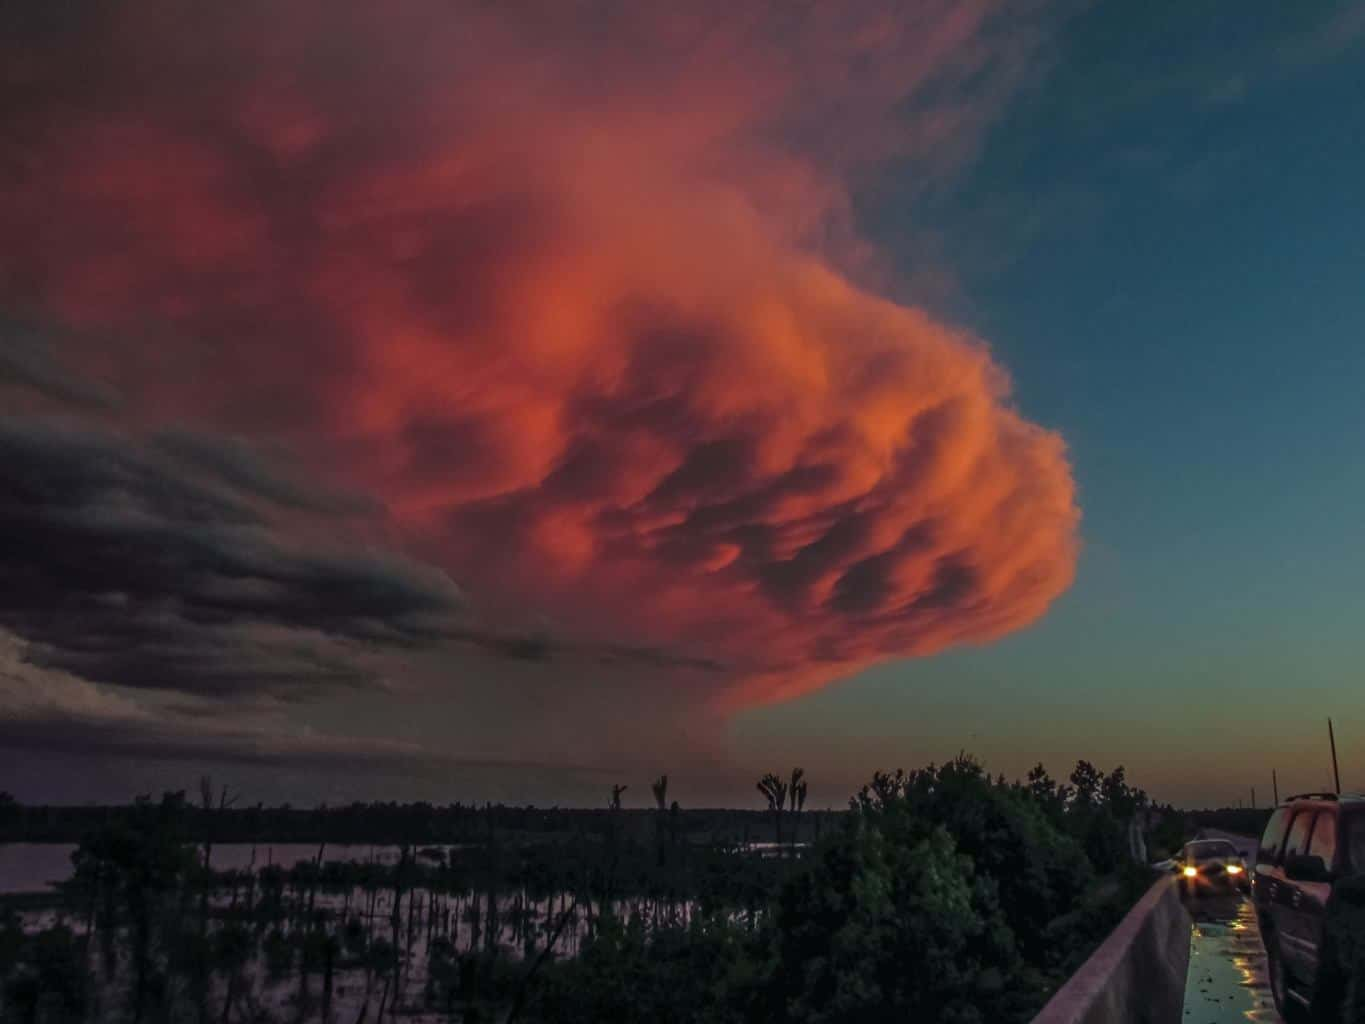 """""""When the Sky turns Pink"""" After the tornadoes of 5-9-16 in Oklahoma I had a 165* panoramic view of one of the most amazing """"sky explosions"""" and full spectrum color wheel before darkness ensued to conclude the day.......video and pics were astounding!"""